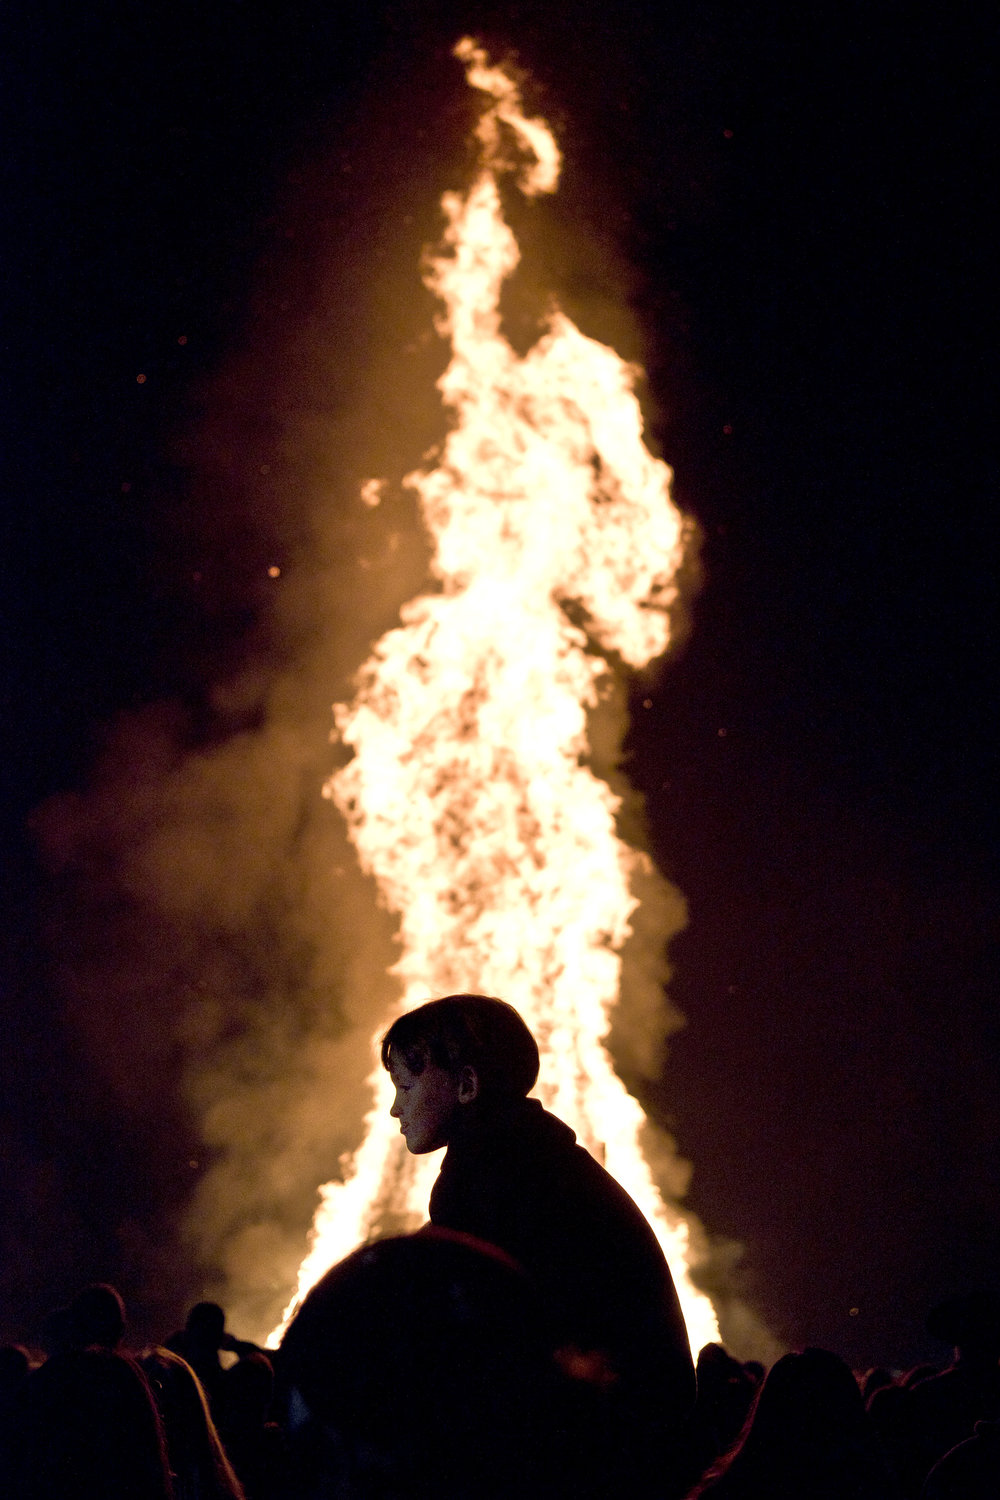 Wednesday night, Nov. 23, 2016, at the Student Bonfire site outside of Hearne, Texas. The Student Bonfire, which is no longer associated with Texas A&M University after the deadly collapse in 1999, is held the night before the university's final football game of the regular season.